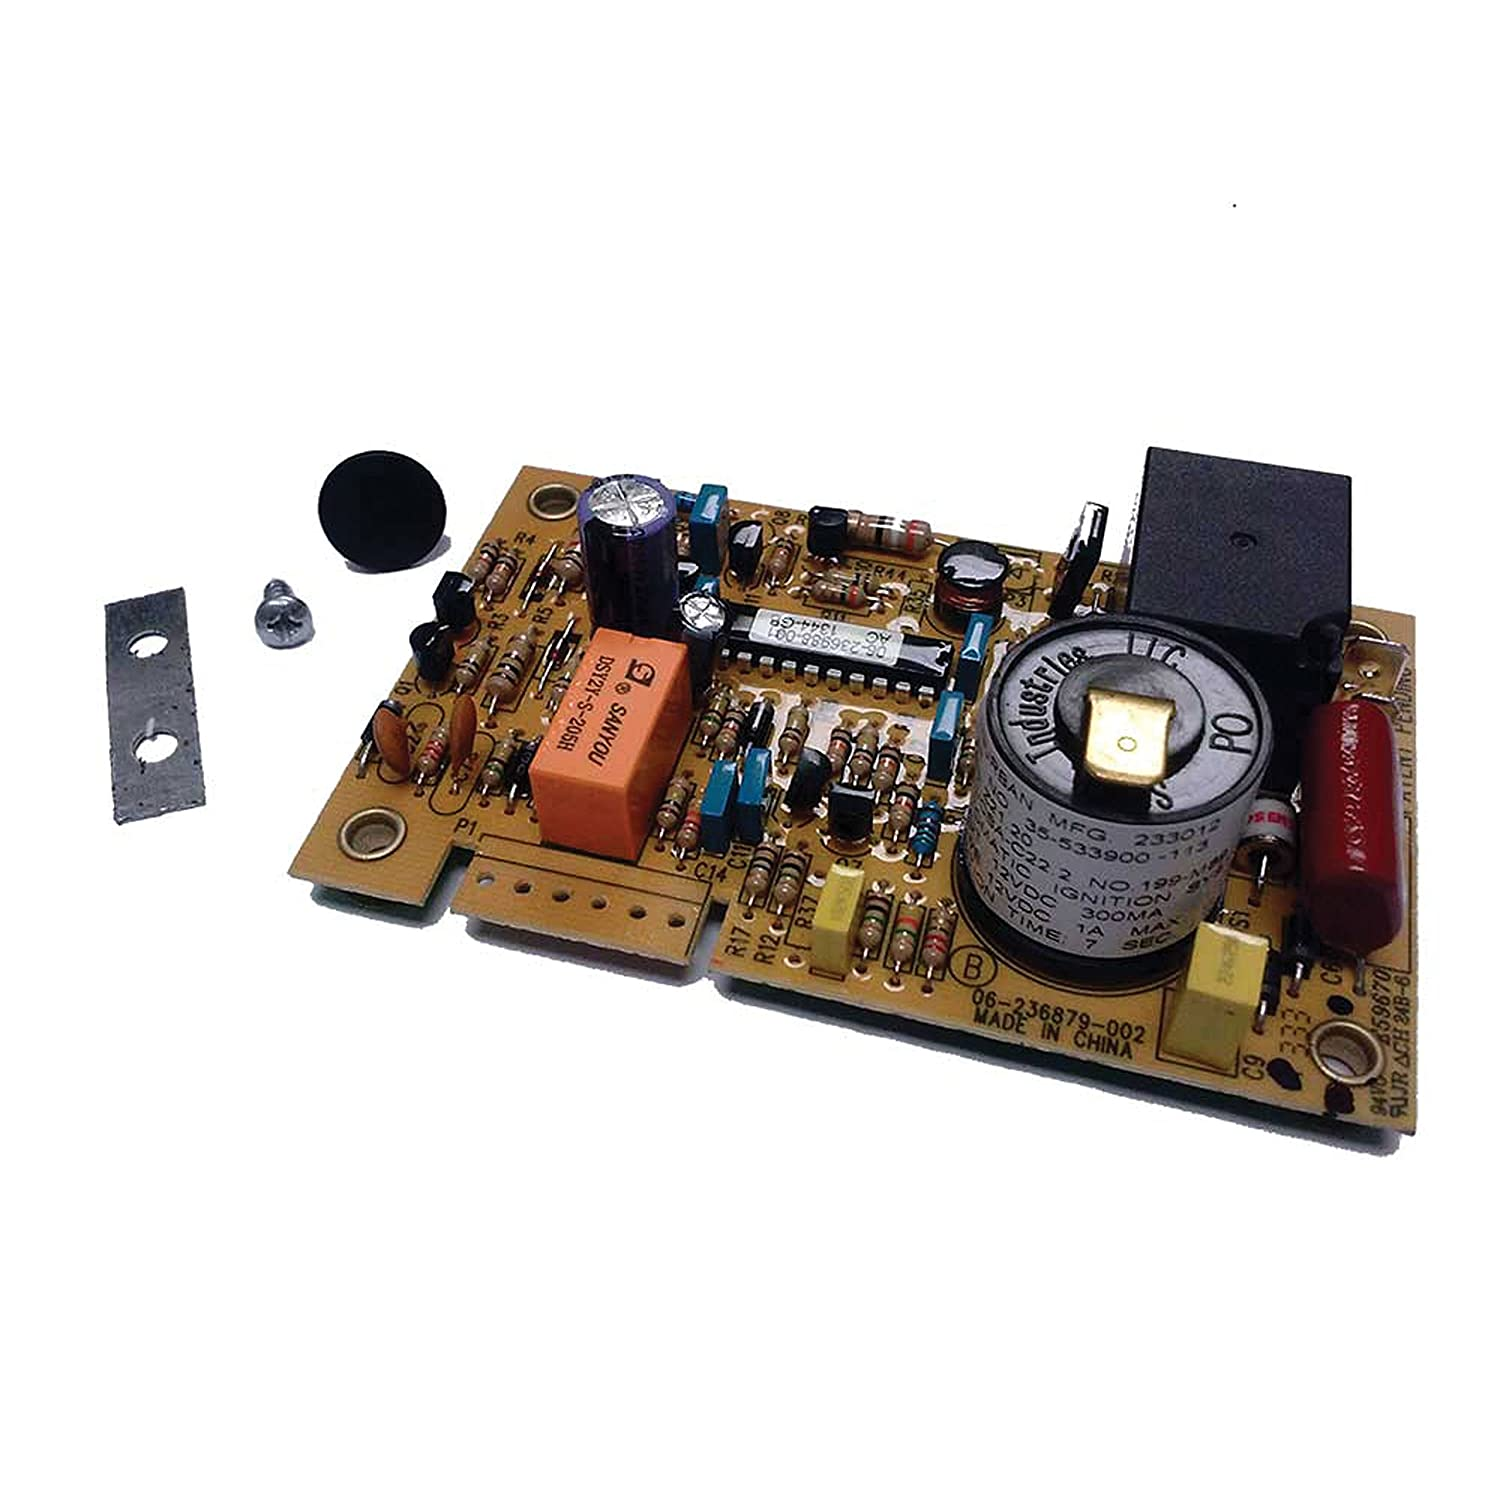 81UT6L8ZdfL._SL1500_ amazon com suburban 521099 3g furnace fan control board automotive Cal Spa Wiring Diagram at webbmarketing.co